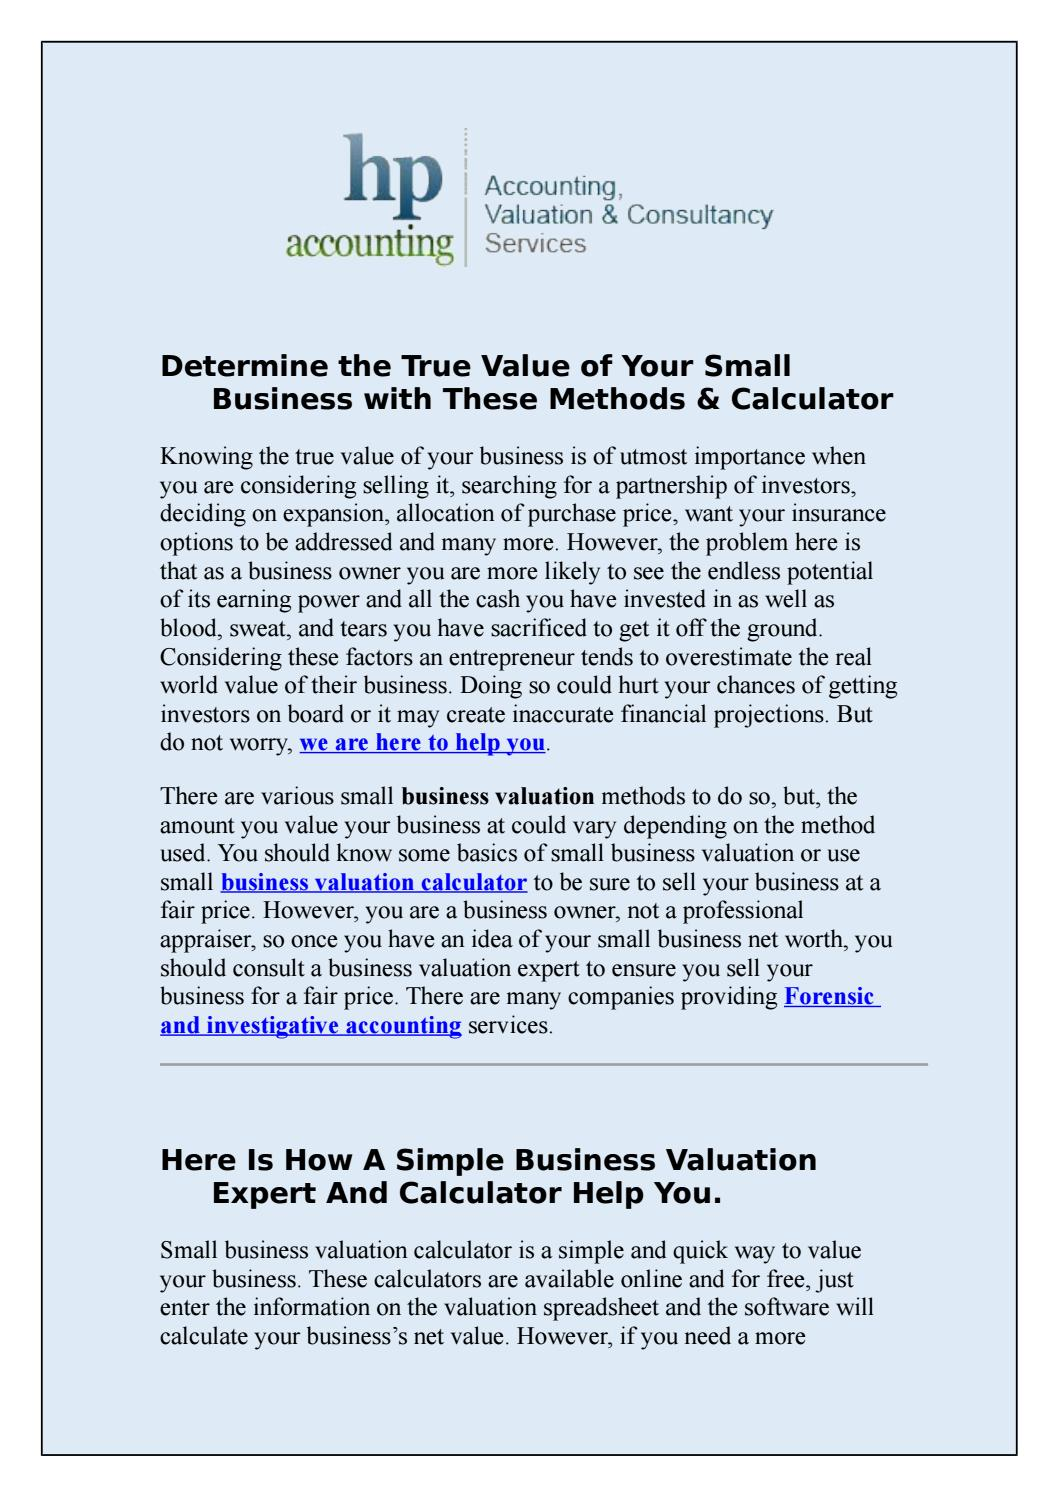 Determine The True Value Of Your Small Business With These Methods Calculator By Hpaccounting1 Issuu